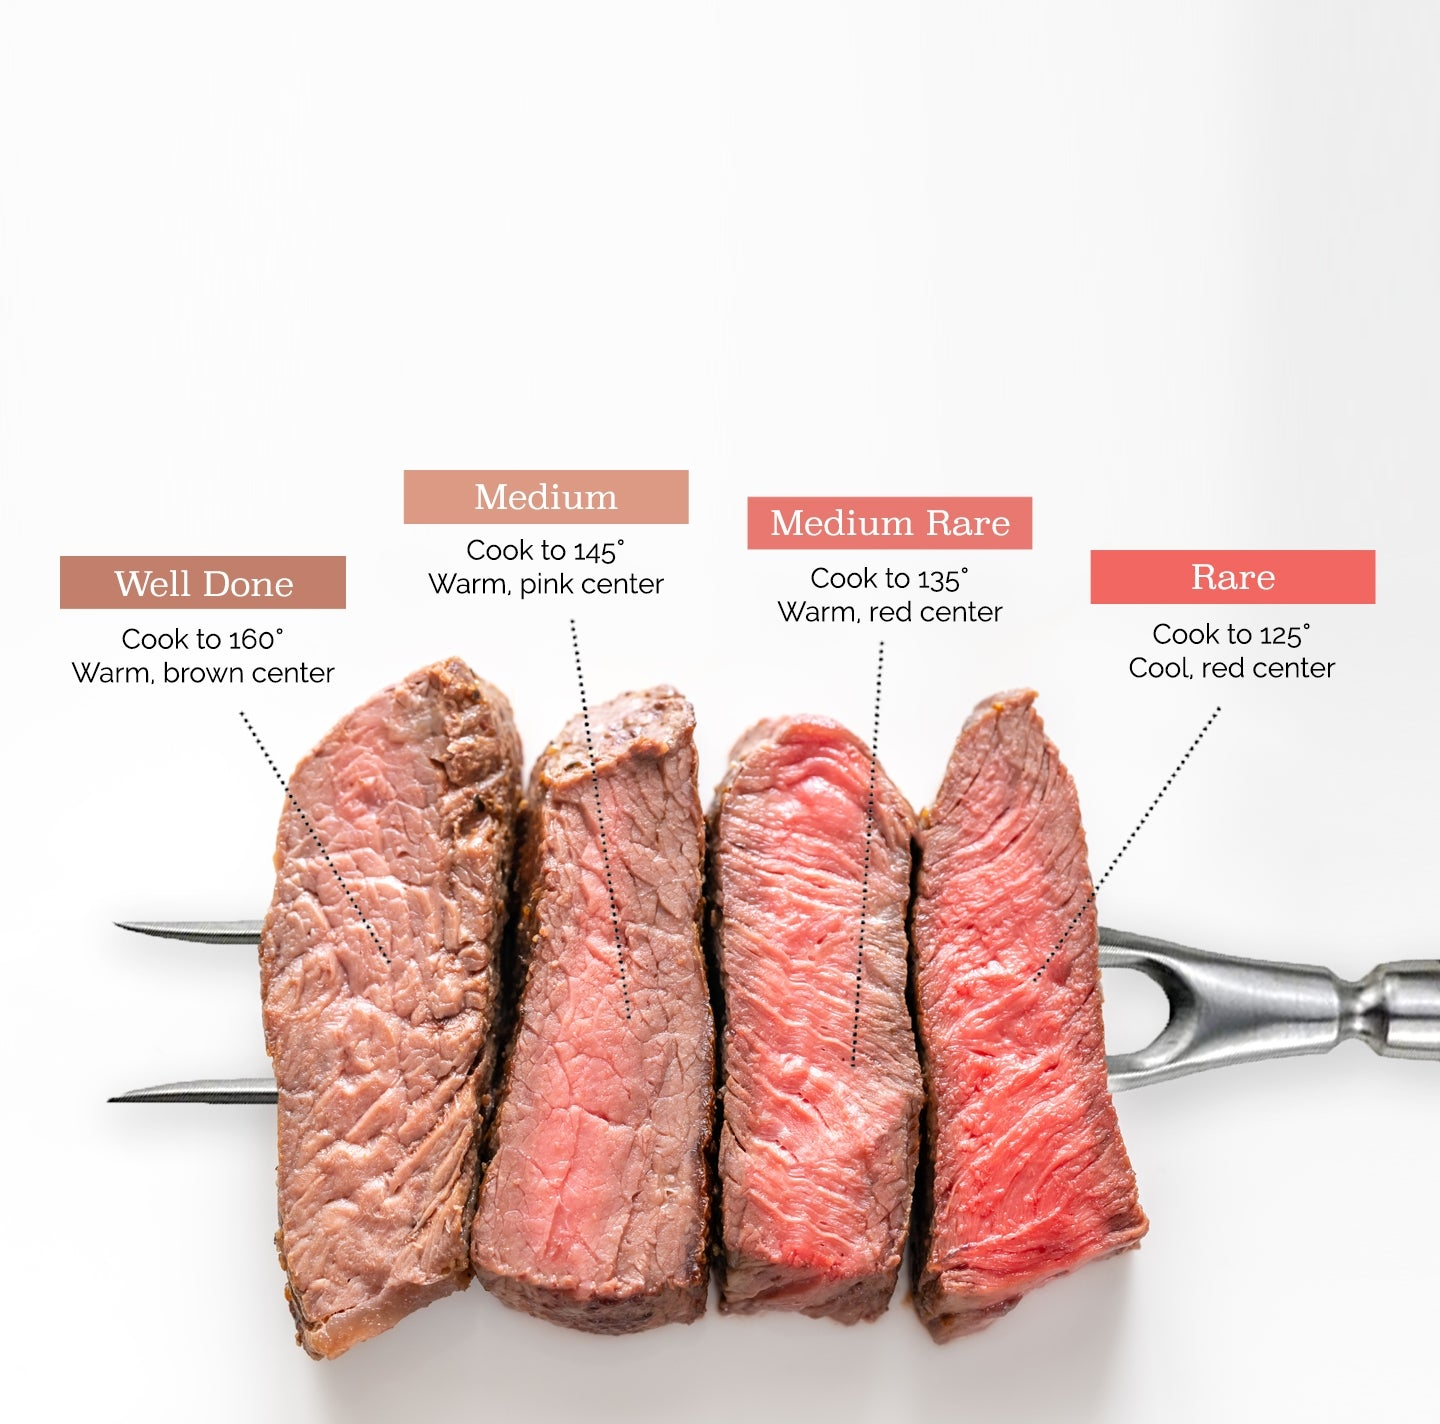 well done, cook to 160 degrees, warm brown center. medium, cook to 145 degrees, warm pink center. medium rare, cook to 135 degrees, warm red center. Rare, cook to 125 degrees, cool red center